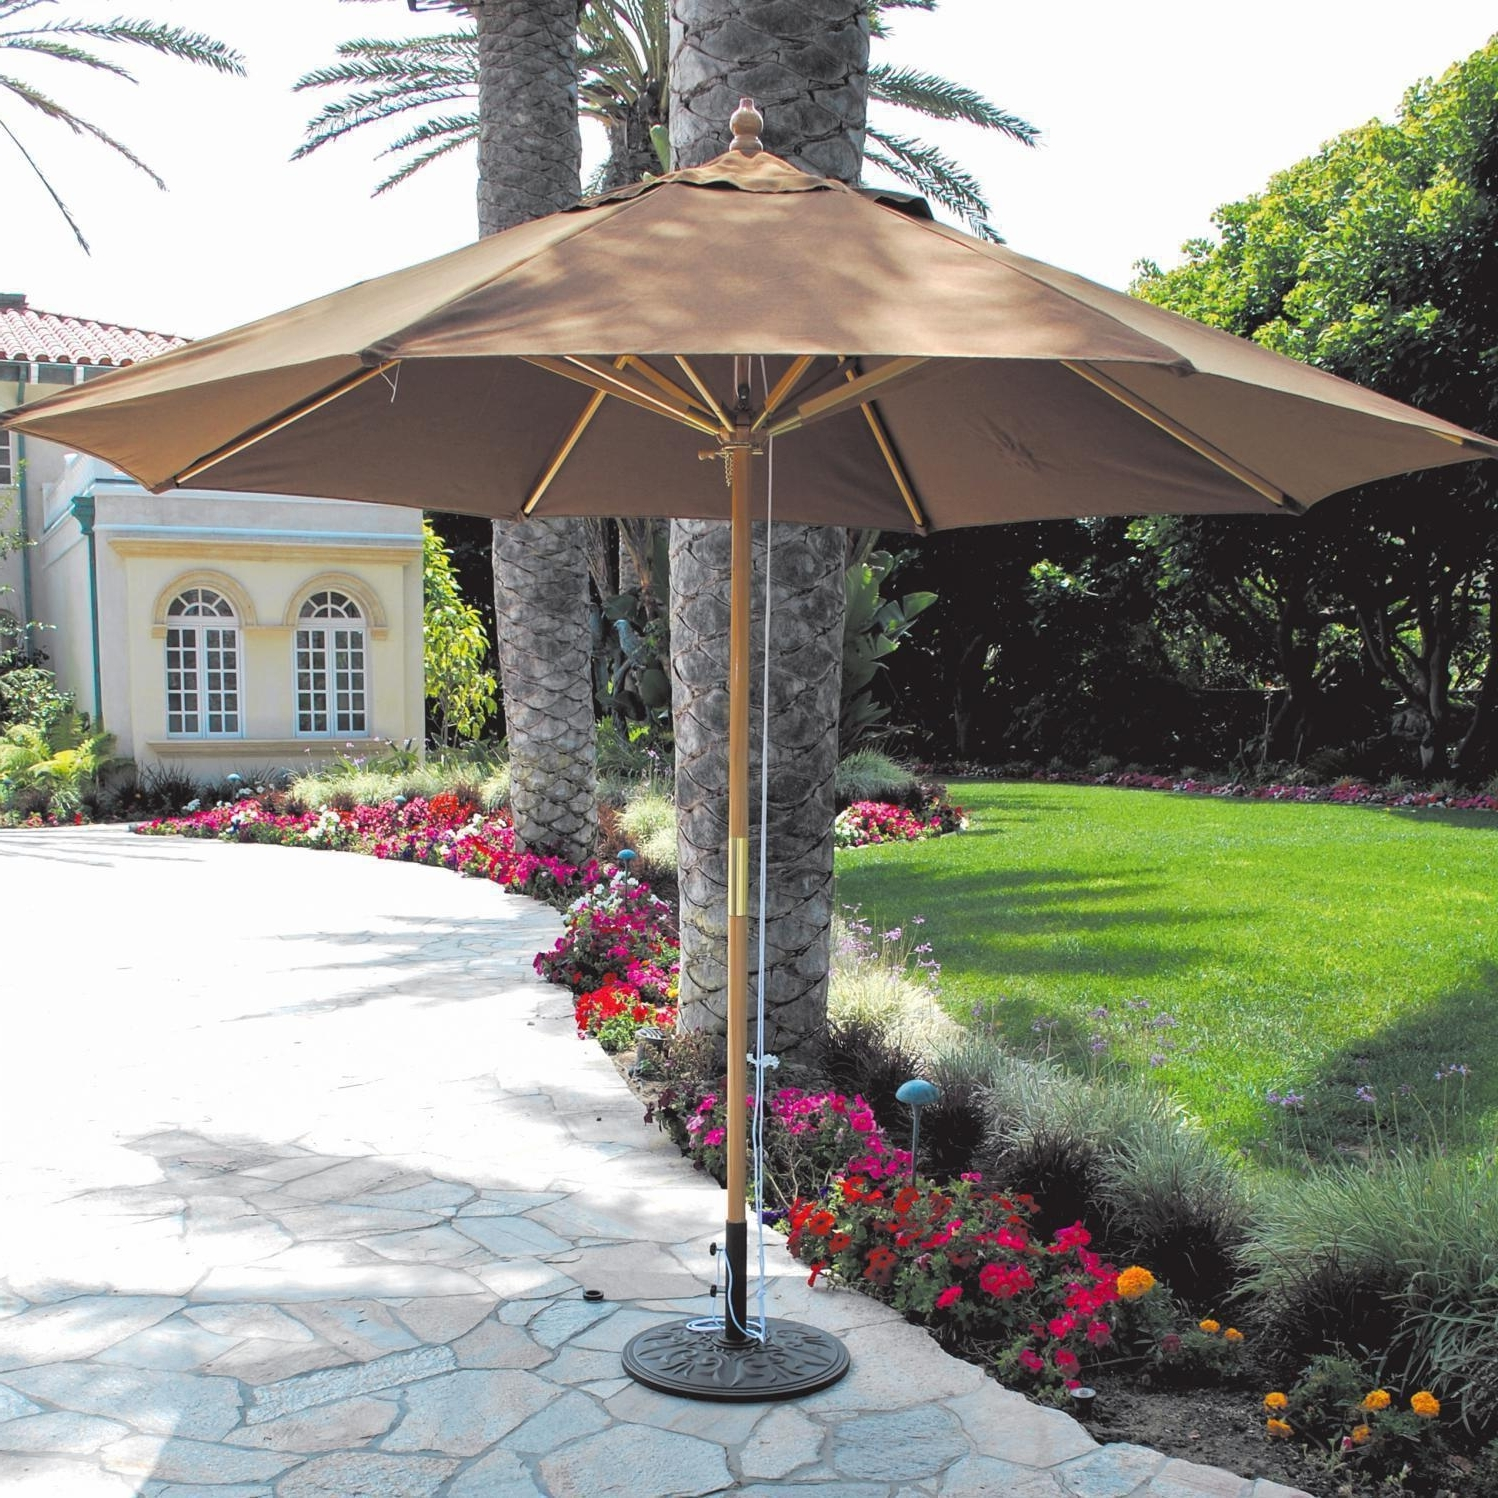 Newest Galtech 11 Ft Wood Patio Umbrella With Pulley Lift – Light Wood Inside 11 Ft Patio Umbrellas (View 7 of 20)